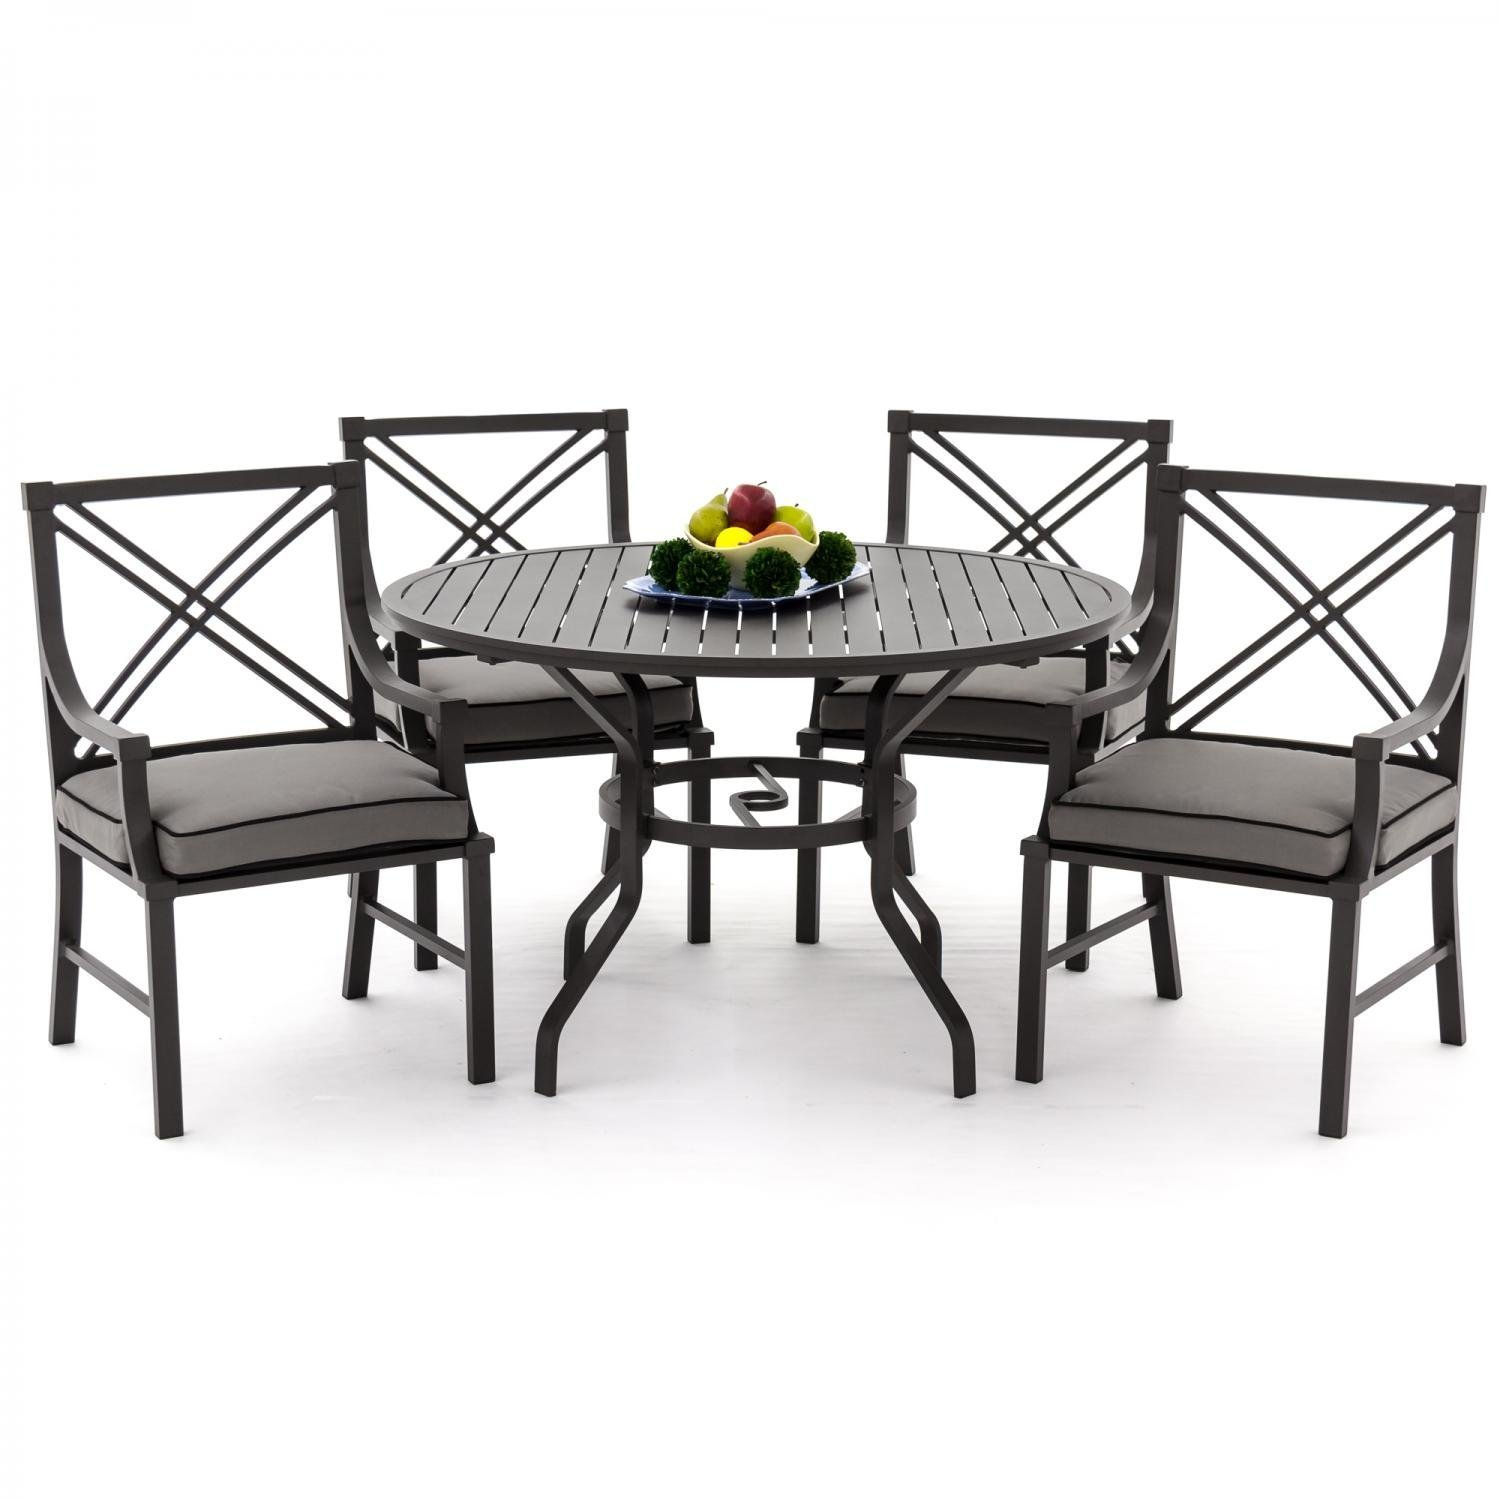 Buy Lakeview Outdoor Designs Audubon 4 Person Aluminum Patio Dining